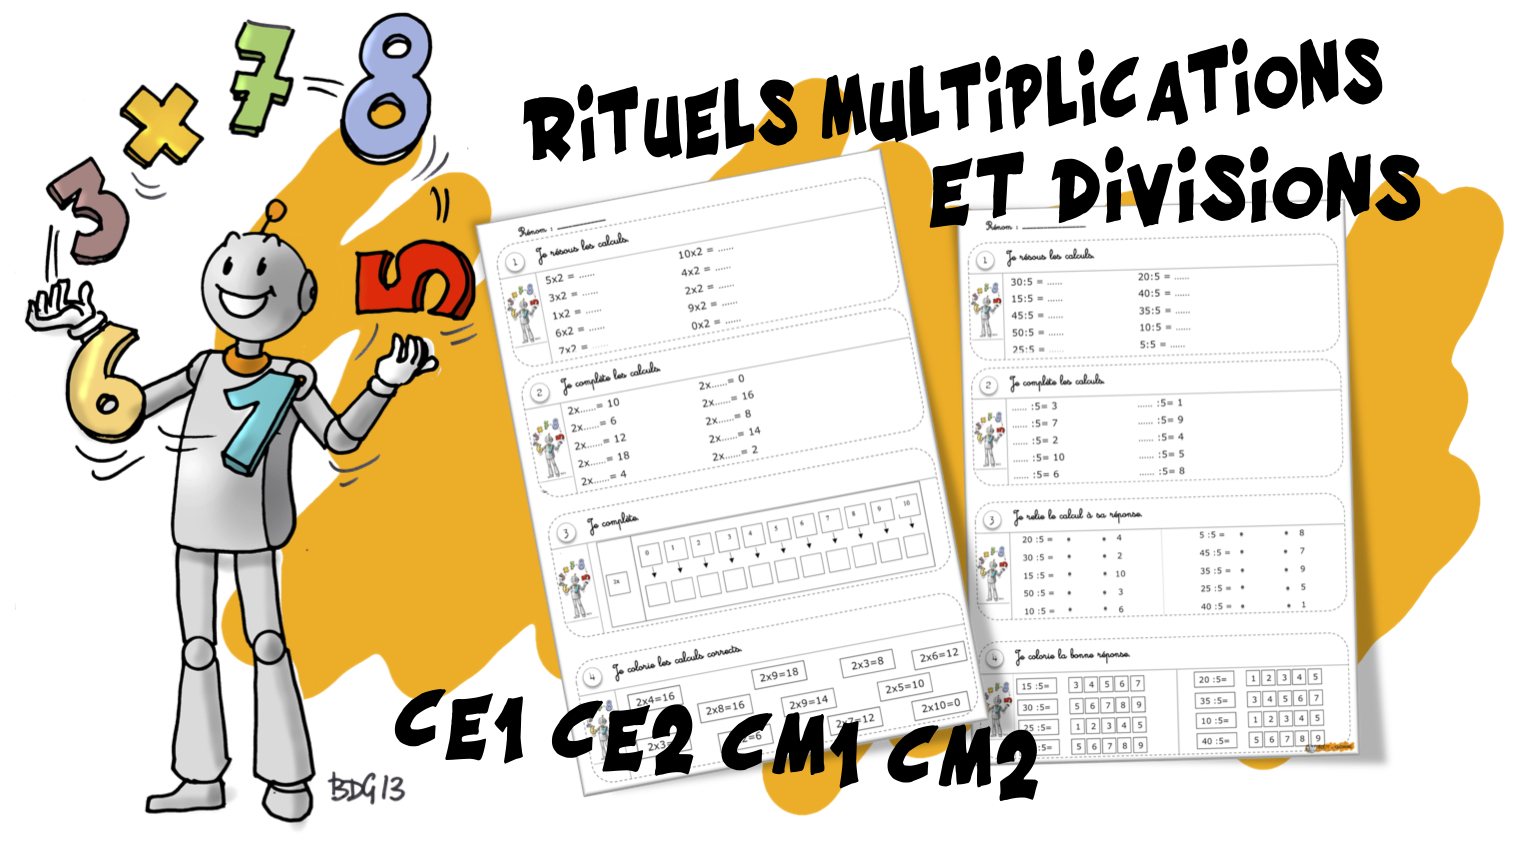 Exercice table de multiplication 1 2 3 4 5 for Table de multiplication de 7 8 9